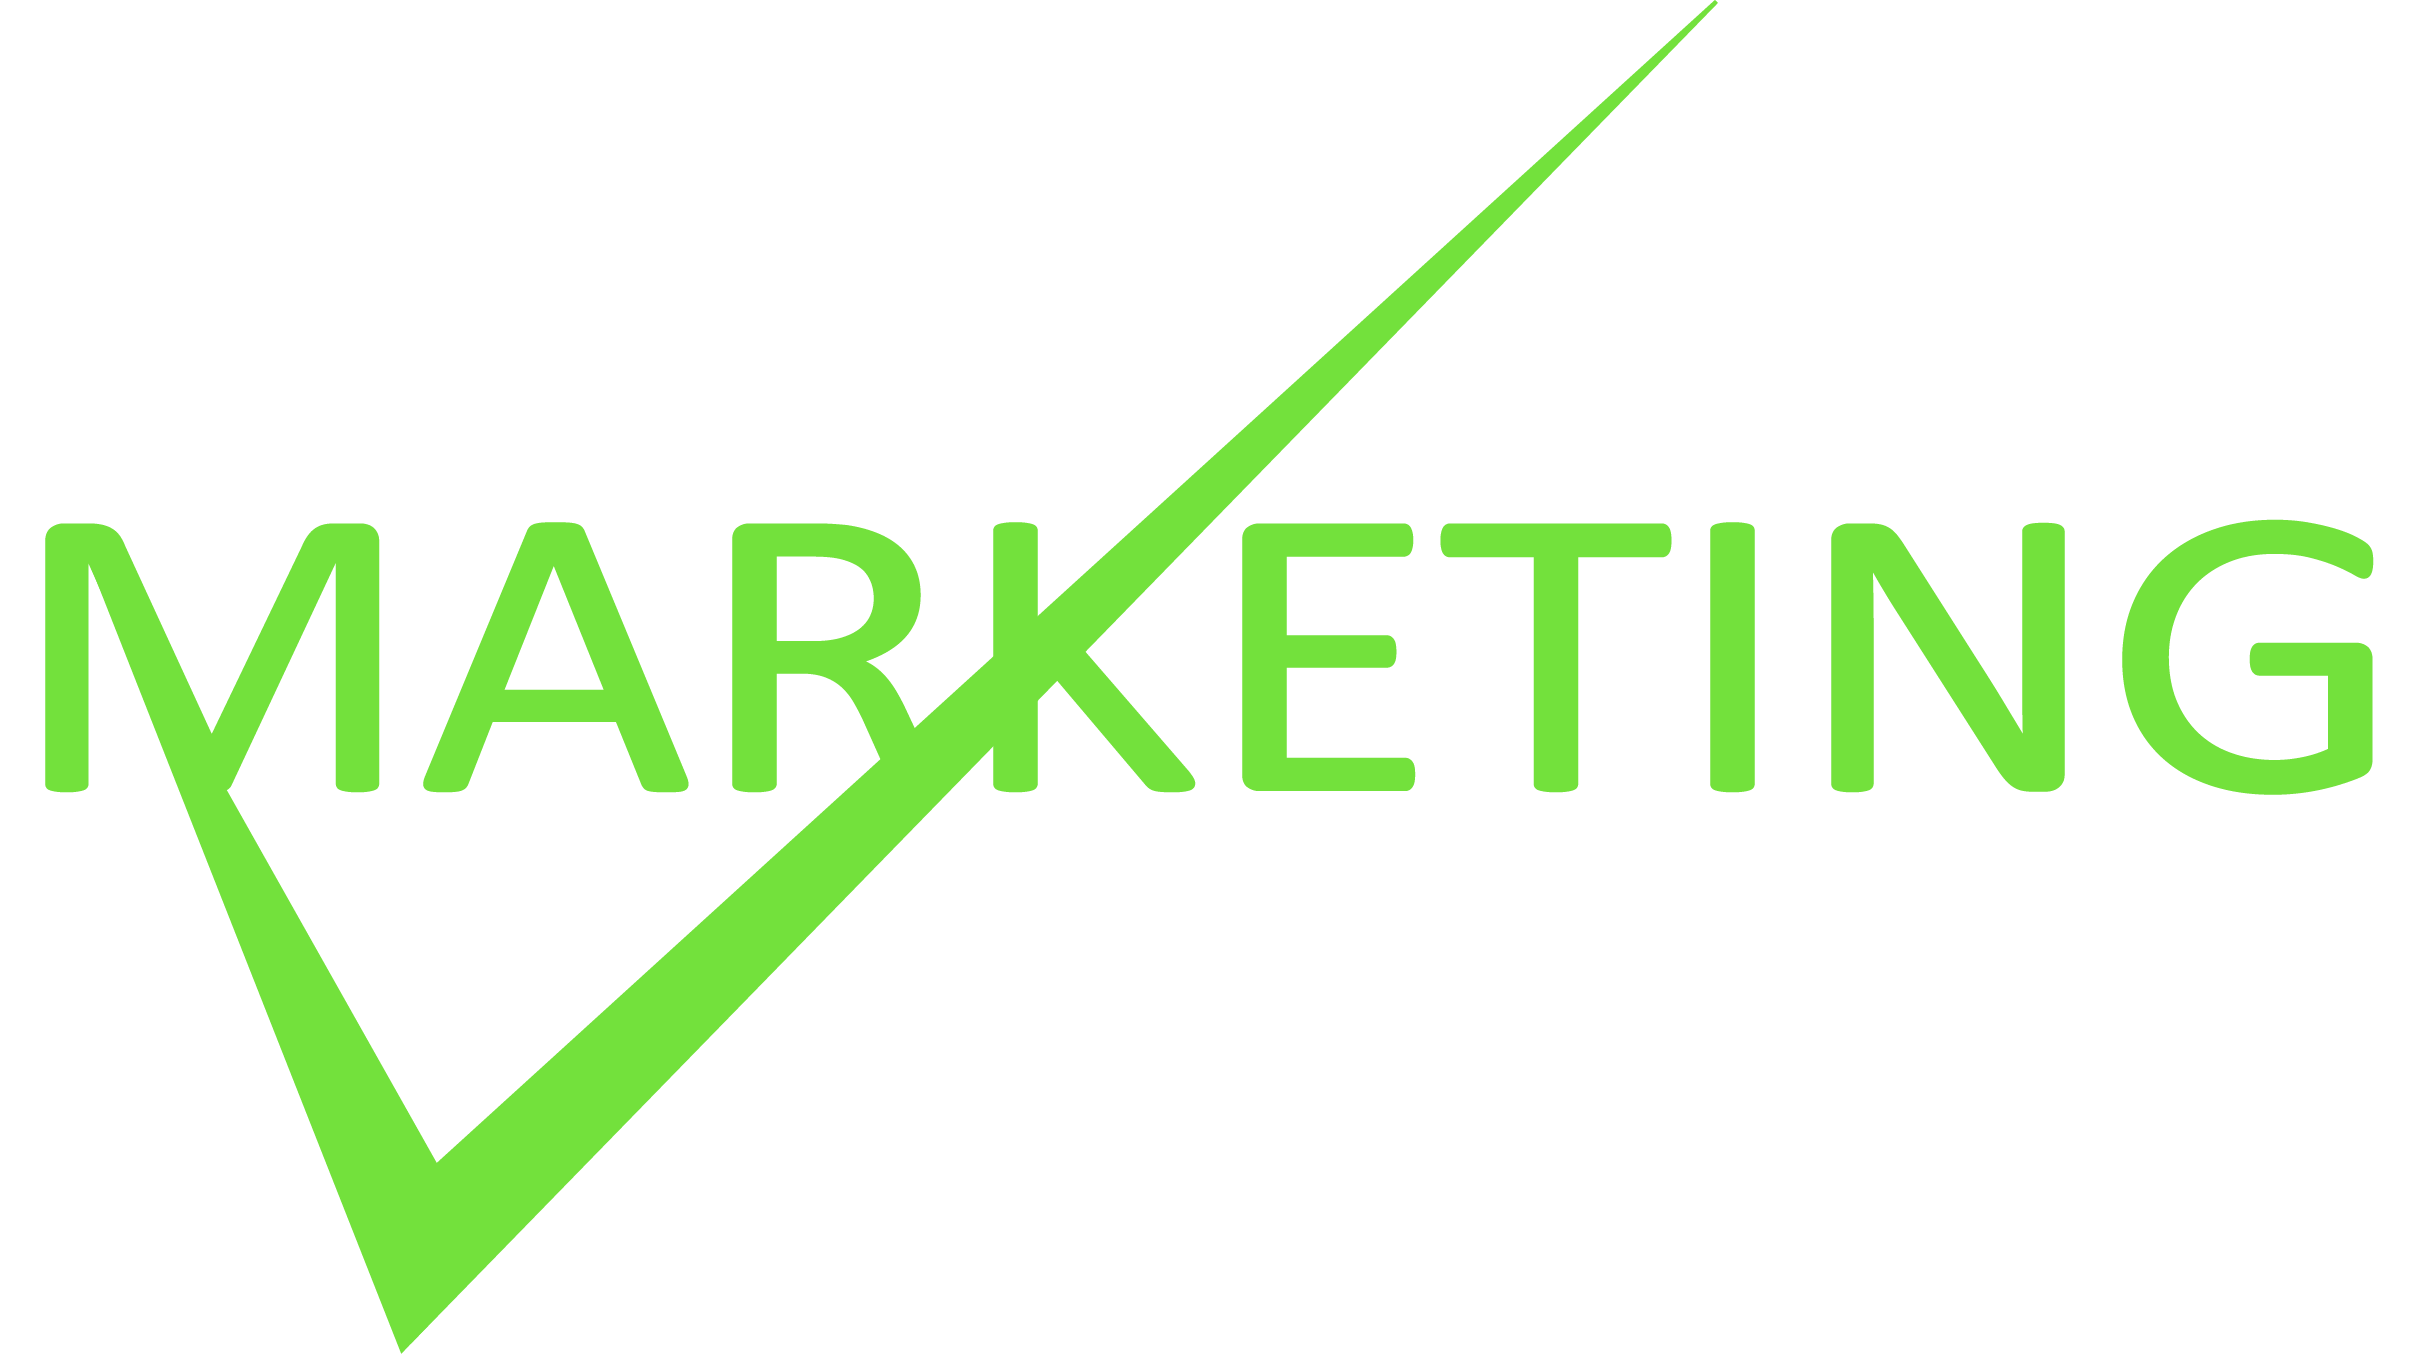 Lead Marketing Design logo